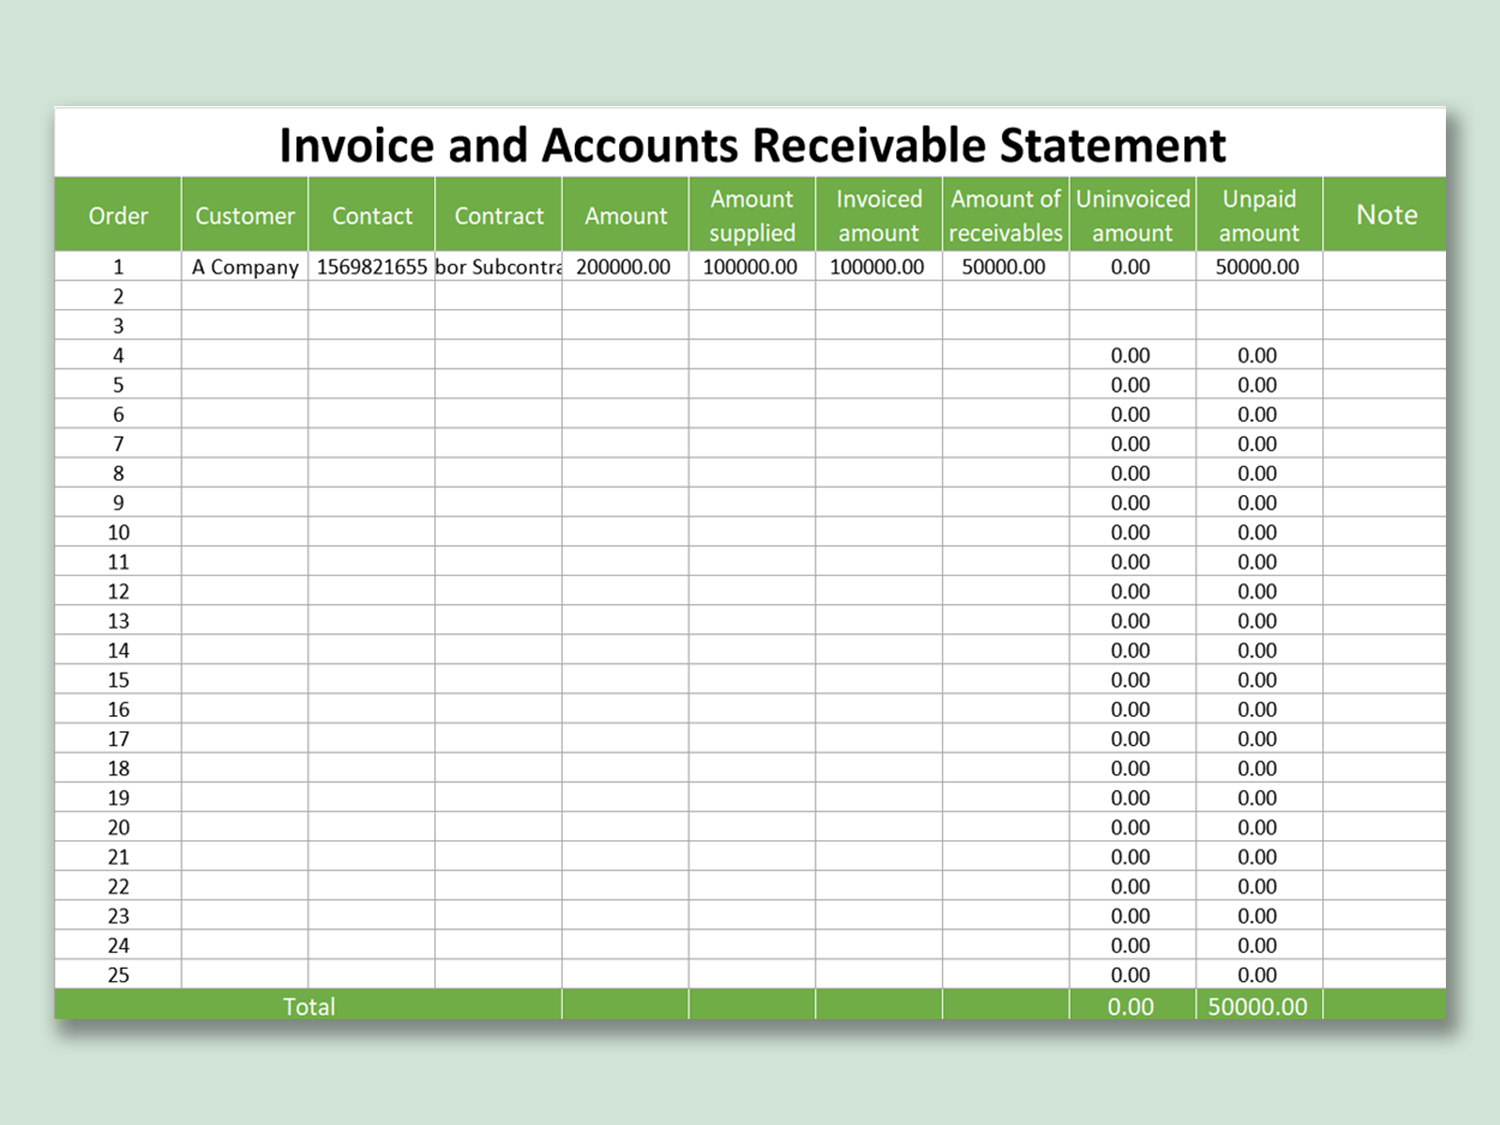 Accounts Receivable Excel Spreadsheet Template Free from d4z1onkegyrs5.cloudfront.net